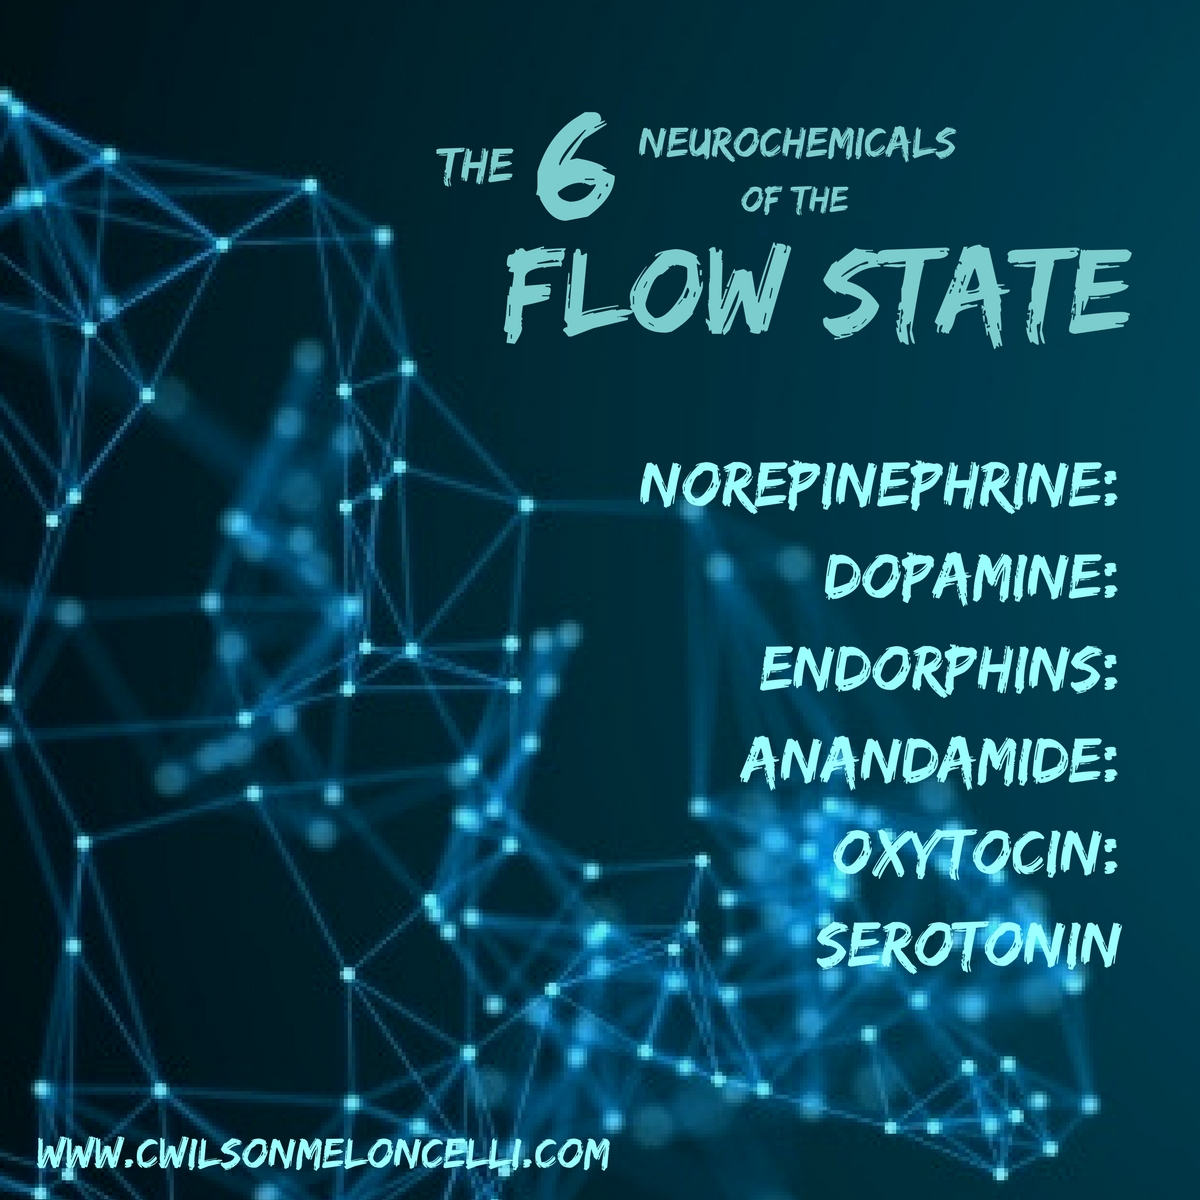 6 neurochemicals that are being released during the flow state.